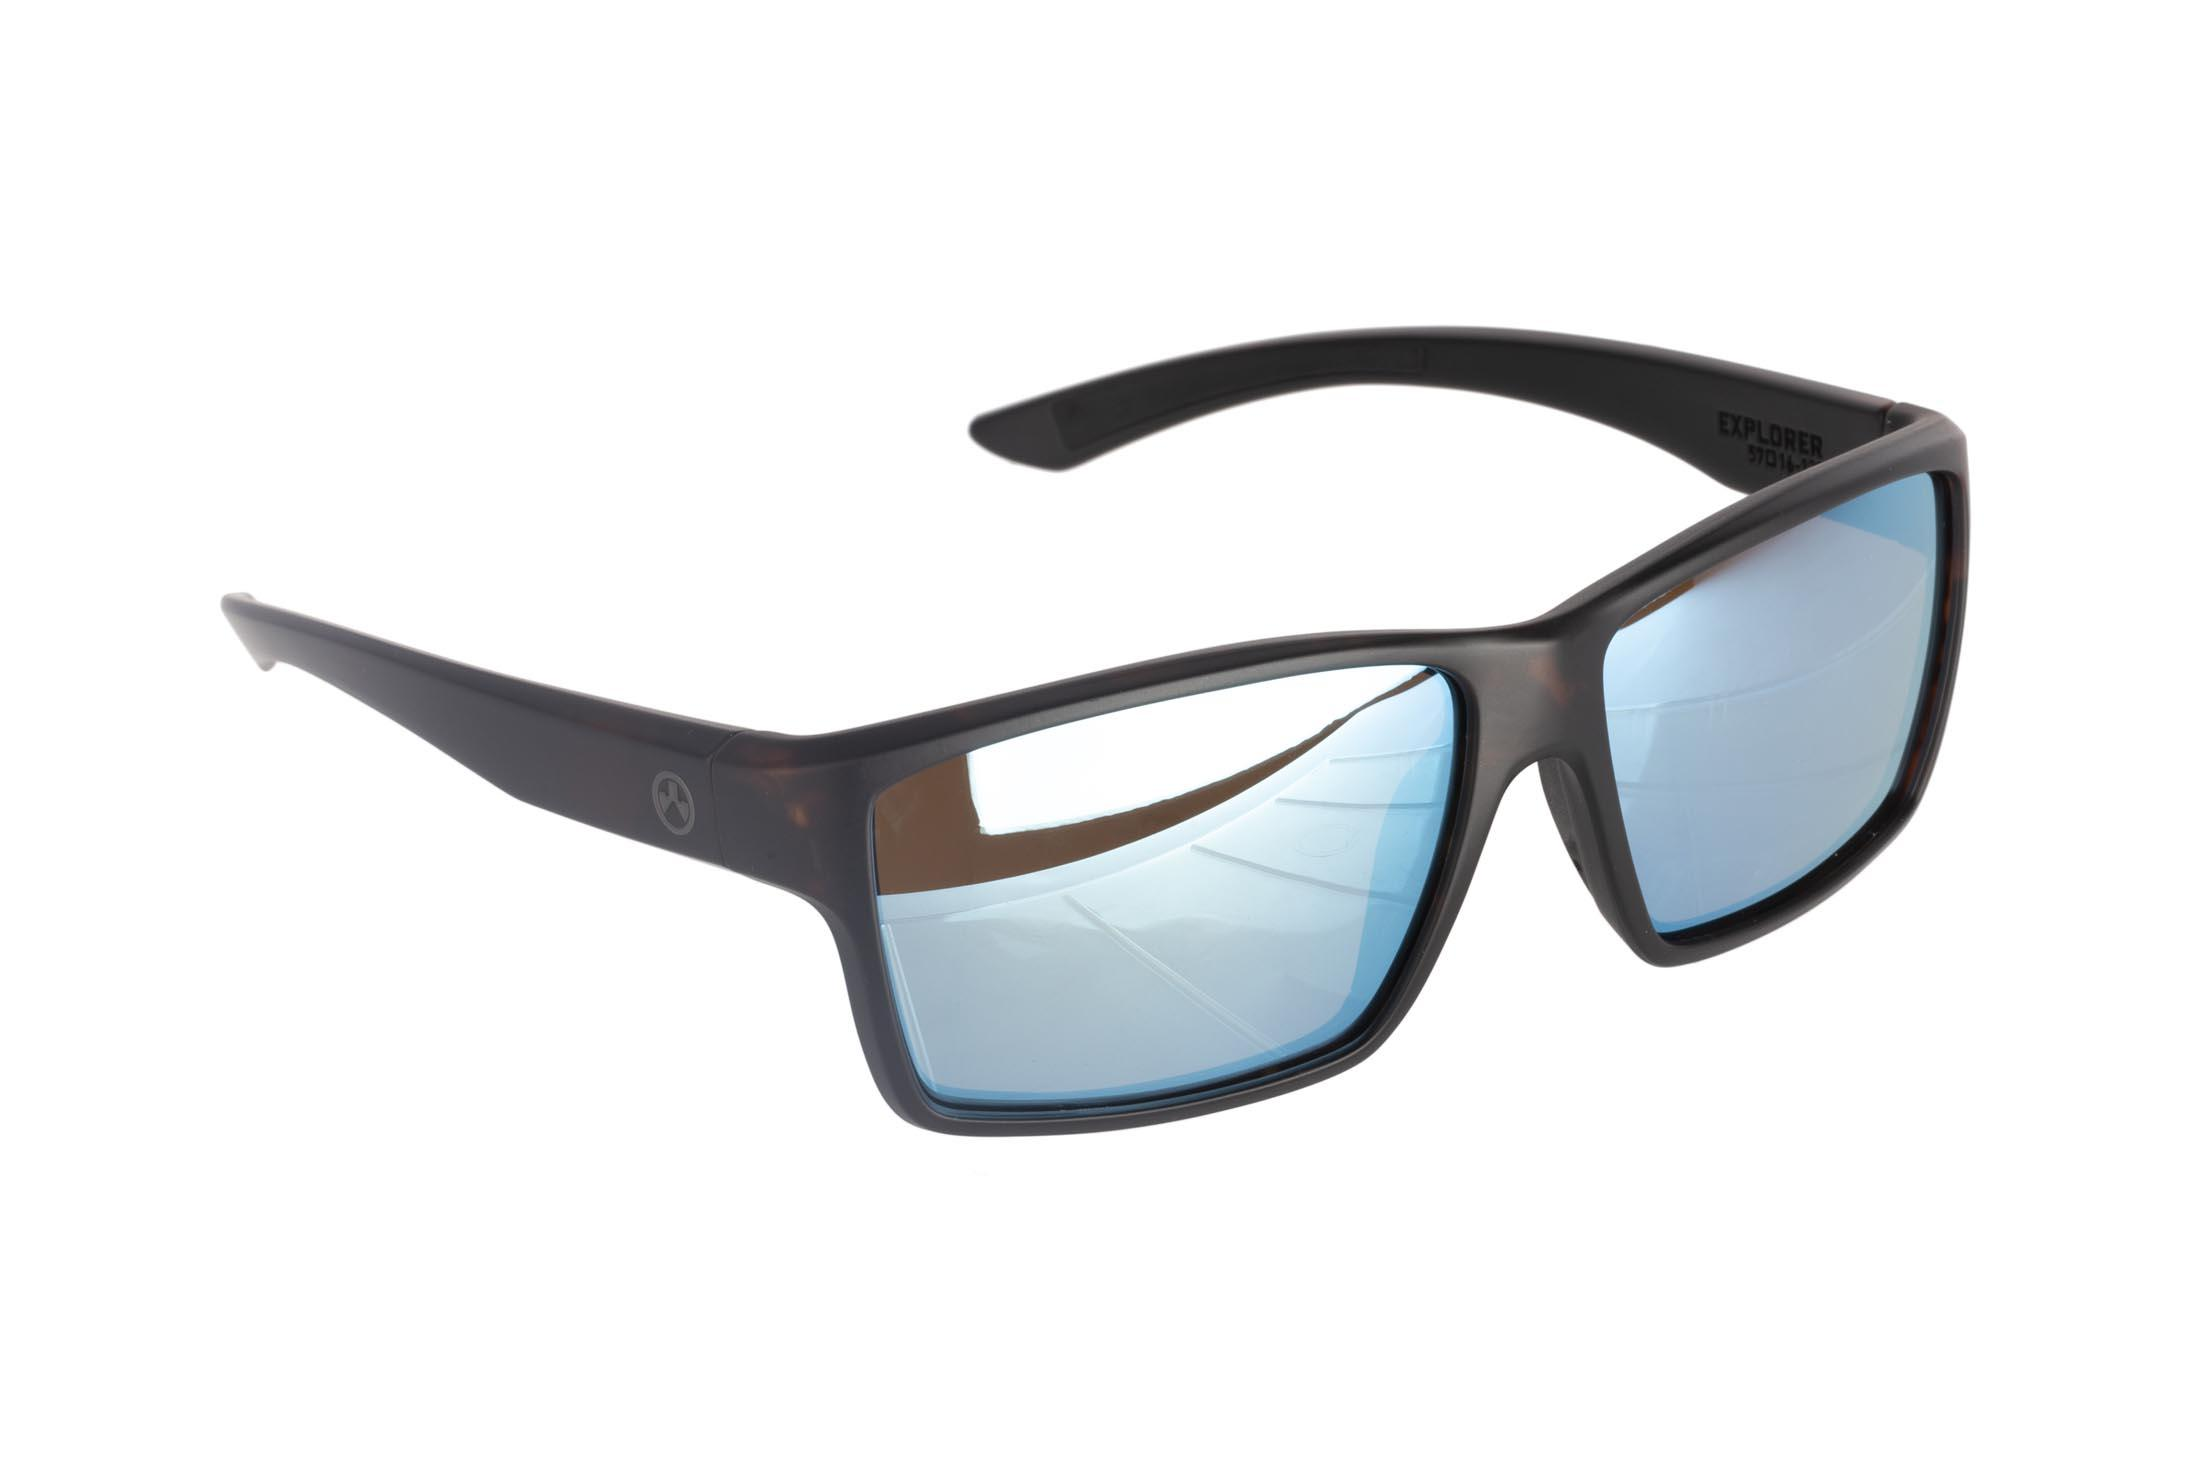 Magpul Explorer ballistic sunglasses with tortoise frame and polarized bronze/blue lenses are ideal for medium-to-large sized shooters